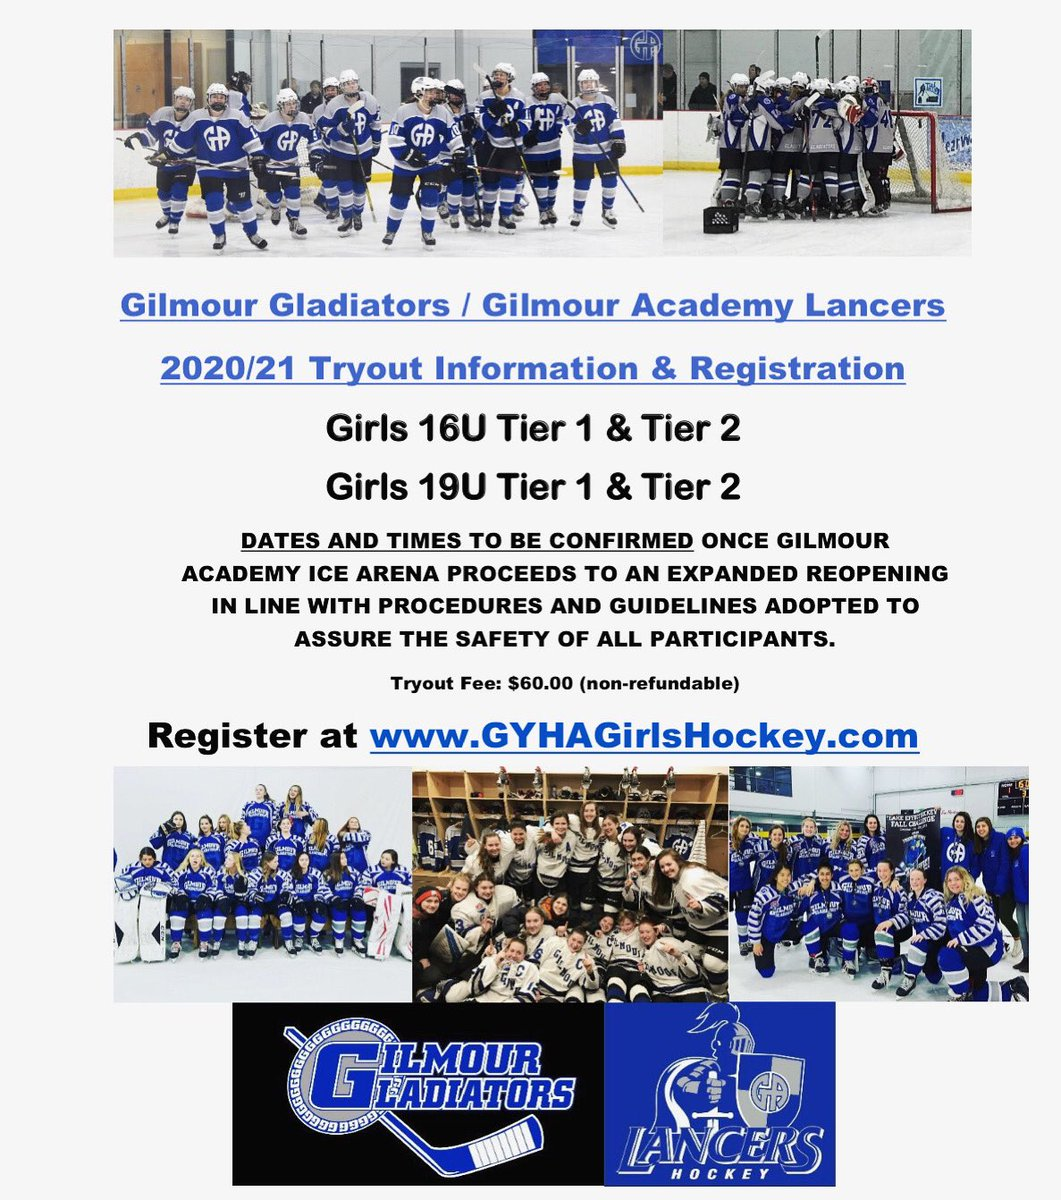 GYHAGirlsHockey photo